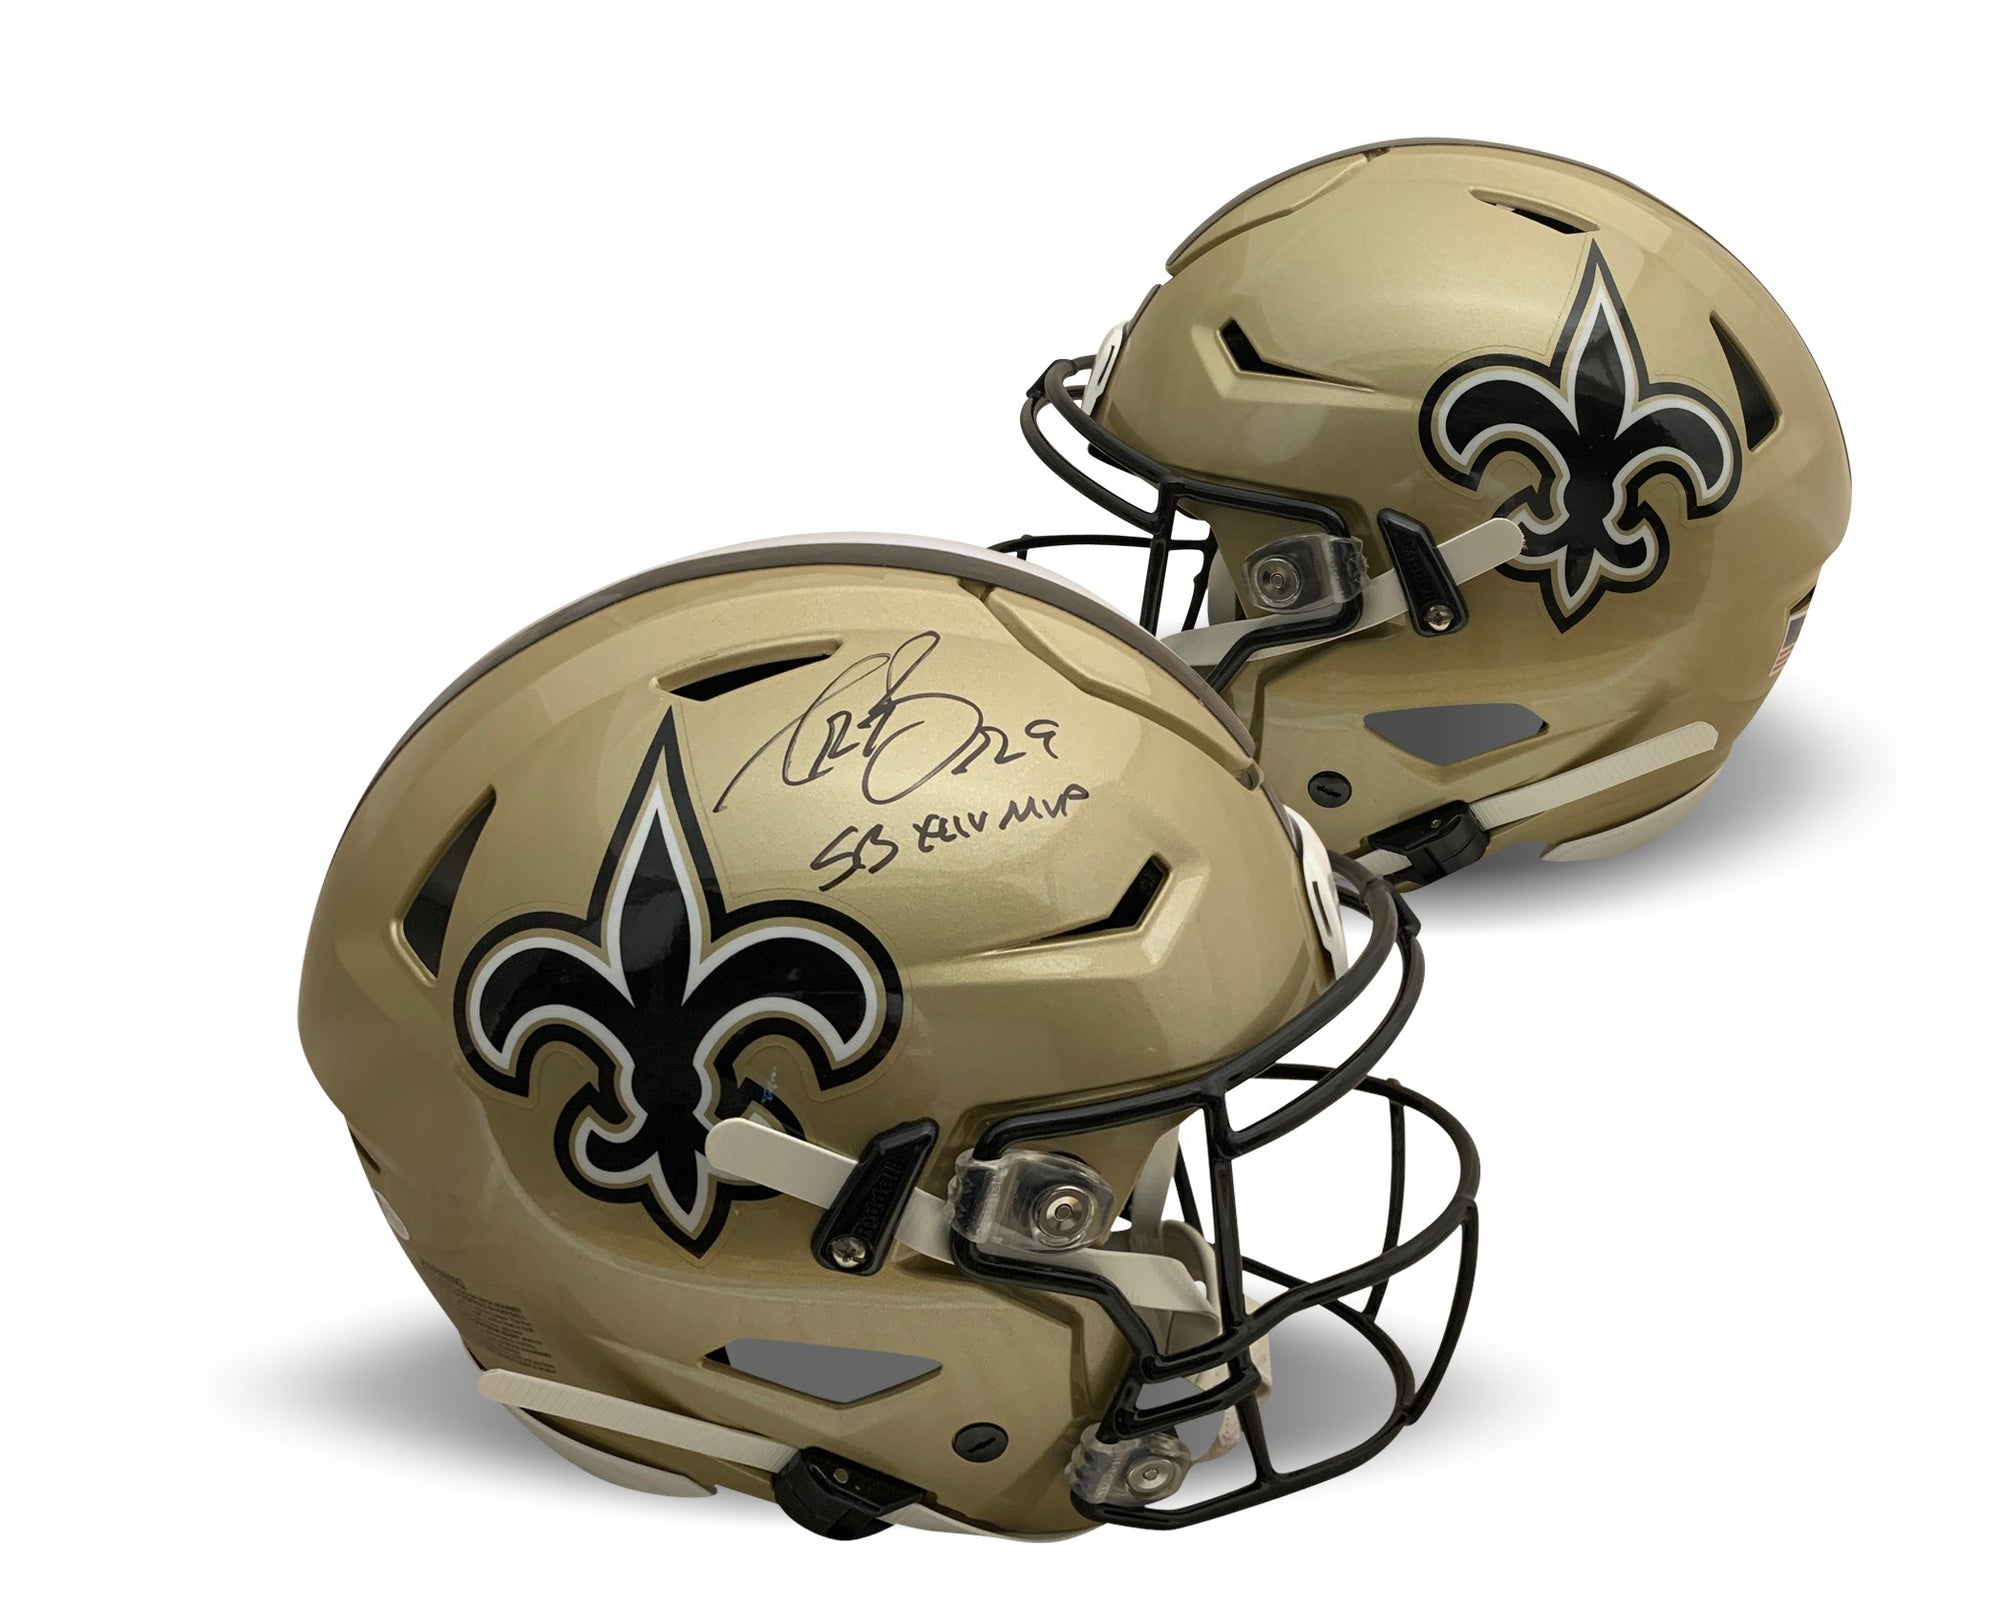 Drew Brees Autographed New Orleans Saints Signed Super Bowl XLIV 44 MVP Authentic Full Size Speedflex Football Helmet Beckett BAS COA-Powers Sports Memorabilia